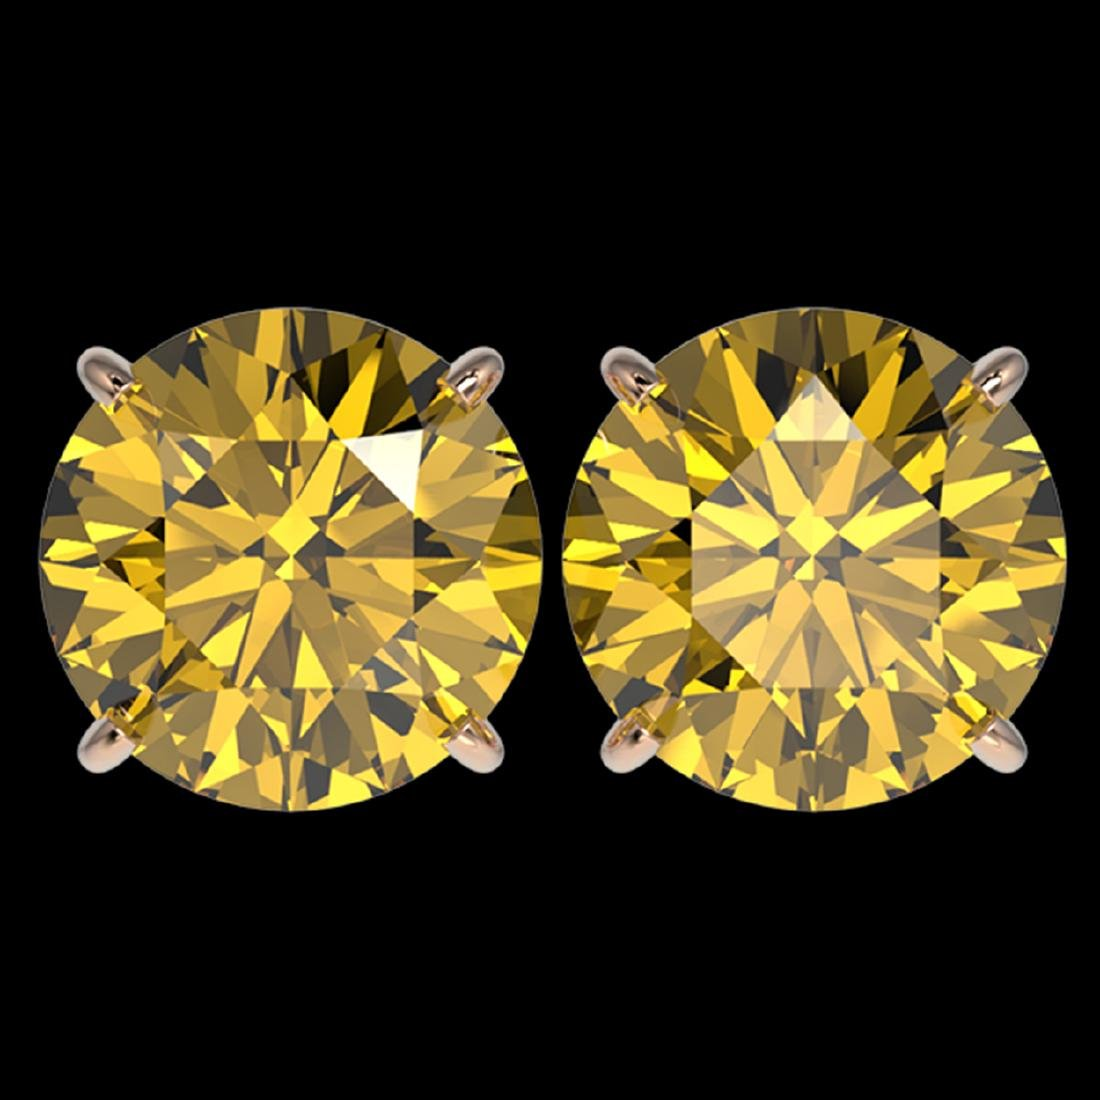 5 ctw Intense Yellow Diamond Stud Earrings 10K Rose